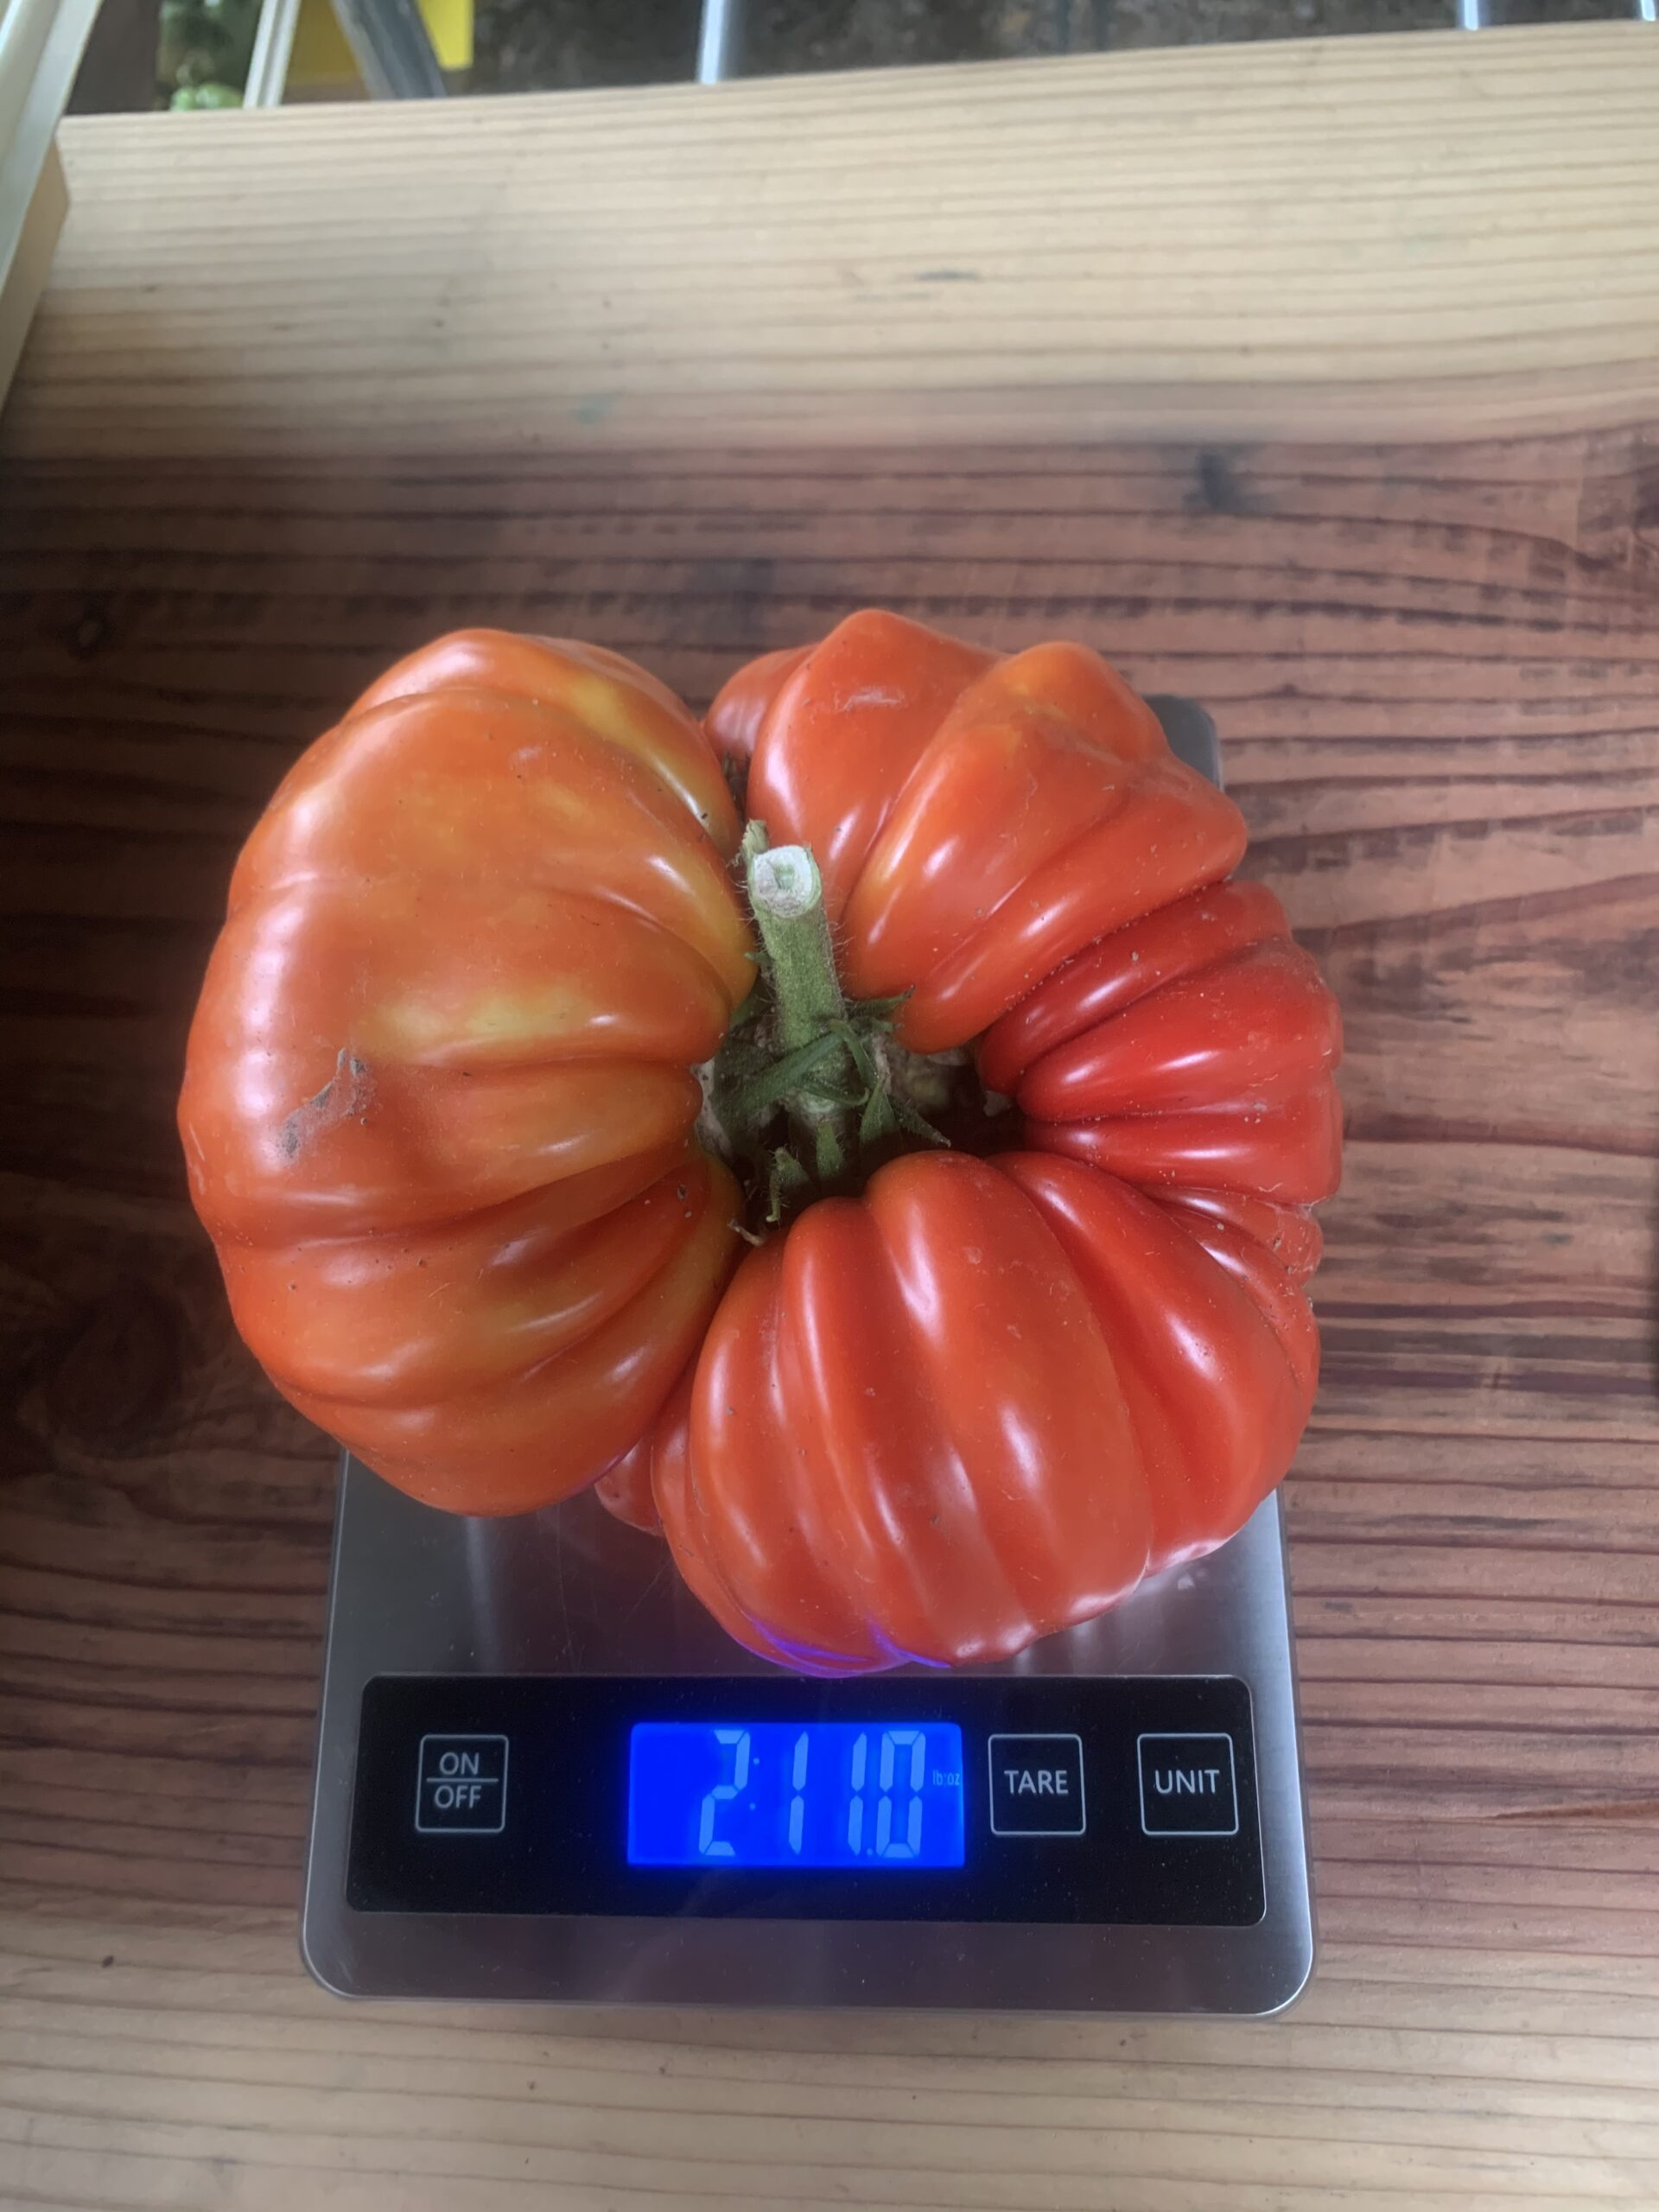 Image of a Rico de Parma tomato on a scale indicating a weight of two pounds eleven ounces.